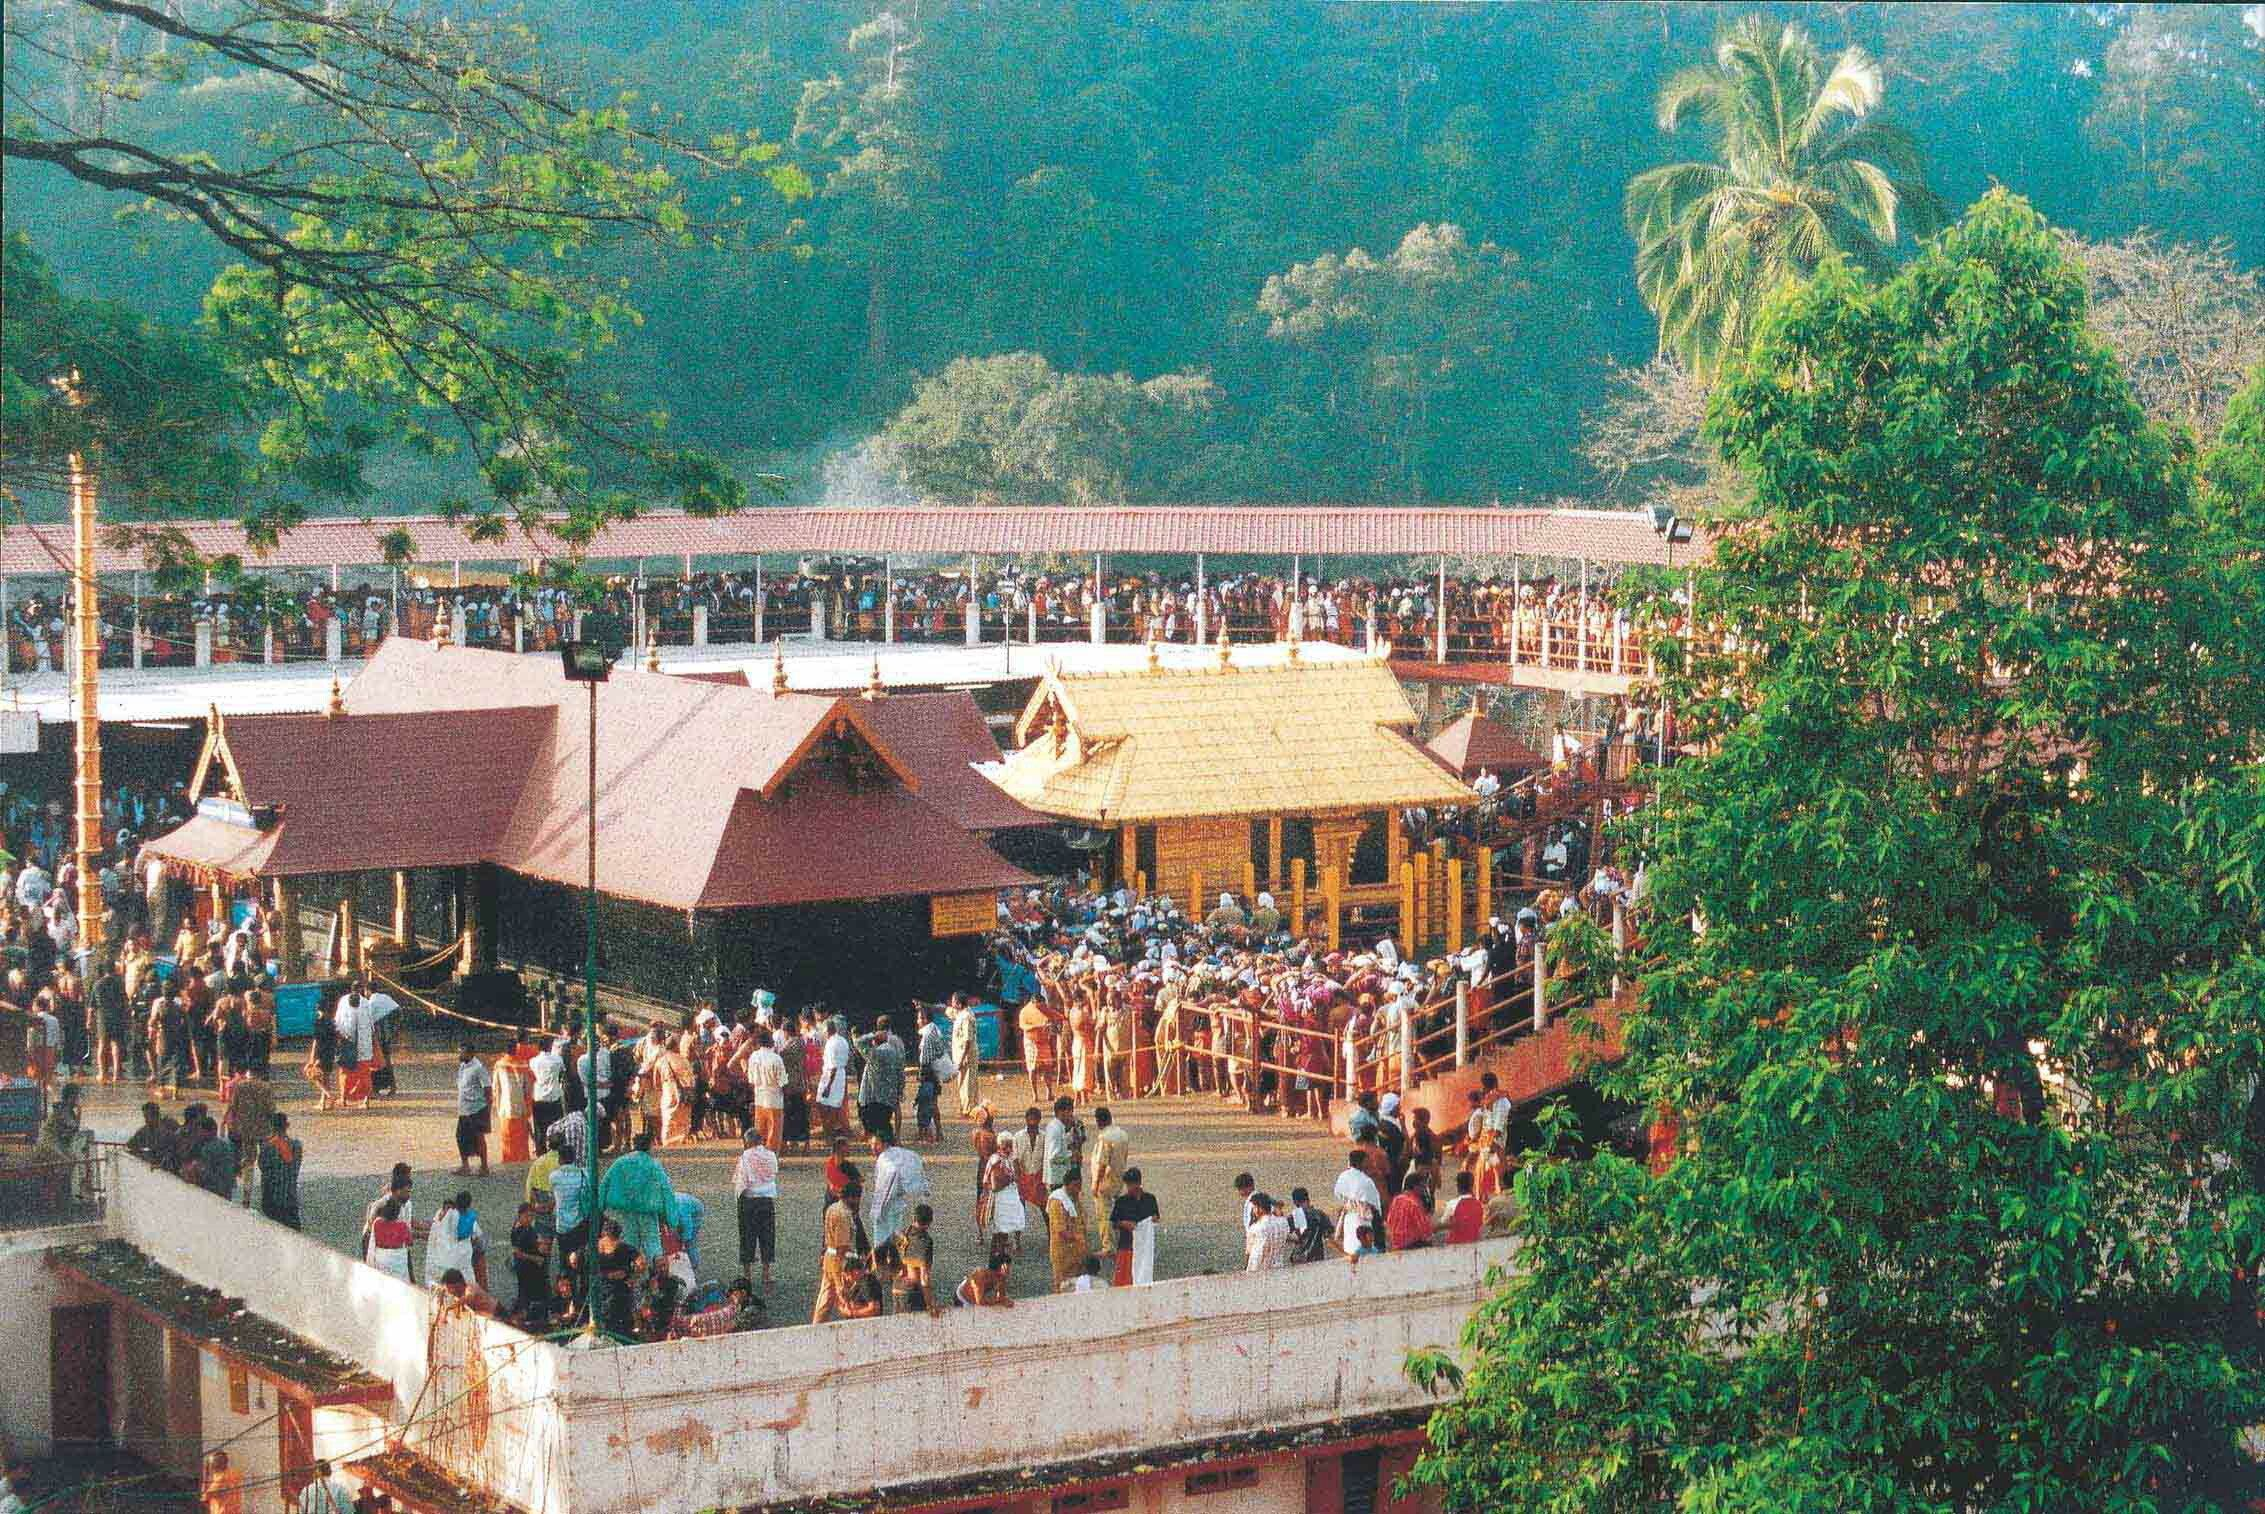 Devotees gather at Kerala's Sabarimala Temple to worship Lord Ayyappa, a Hindu deity.